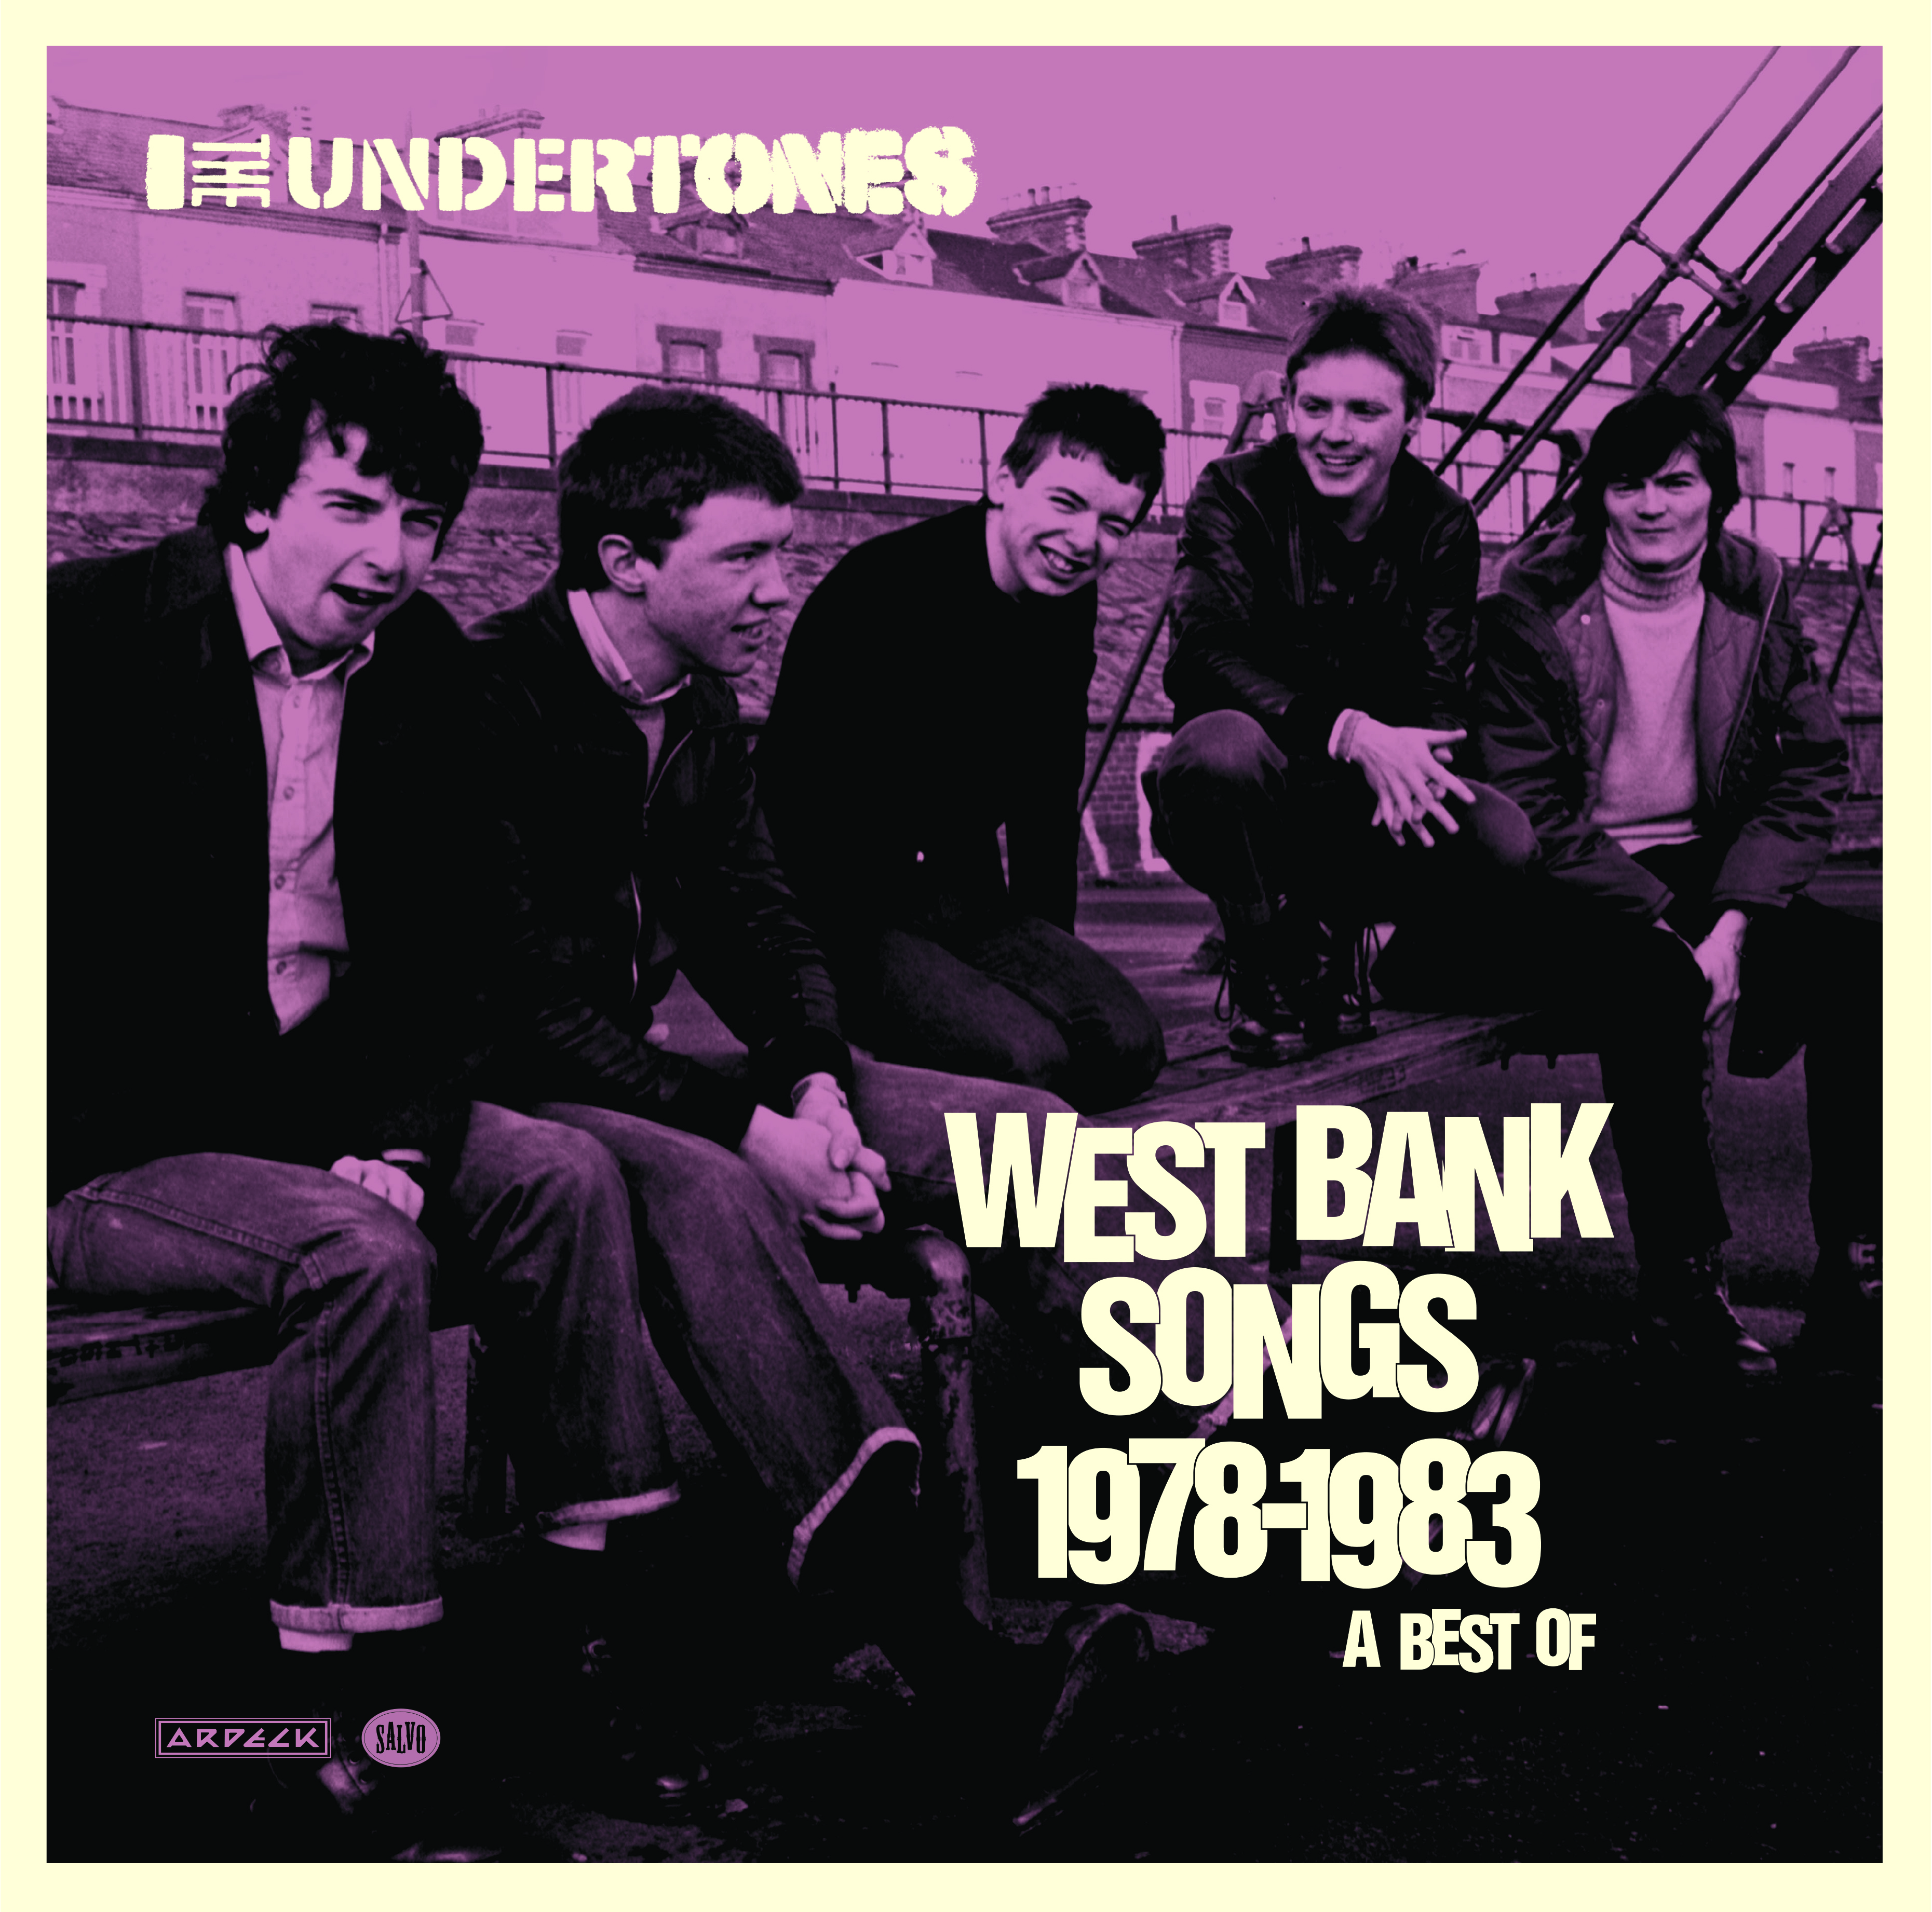 News – The Undertones – West Bank Songs 1978-1983 – A Best Of